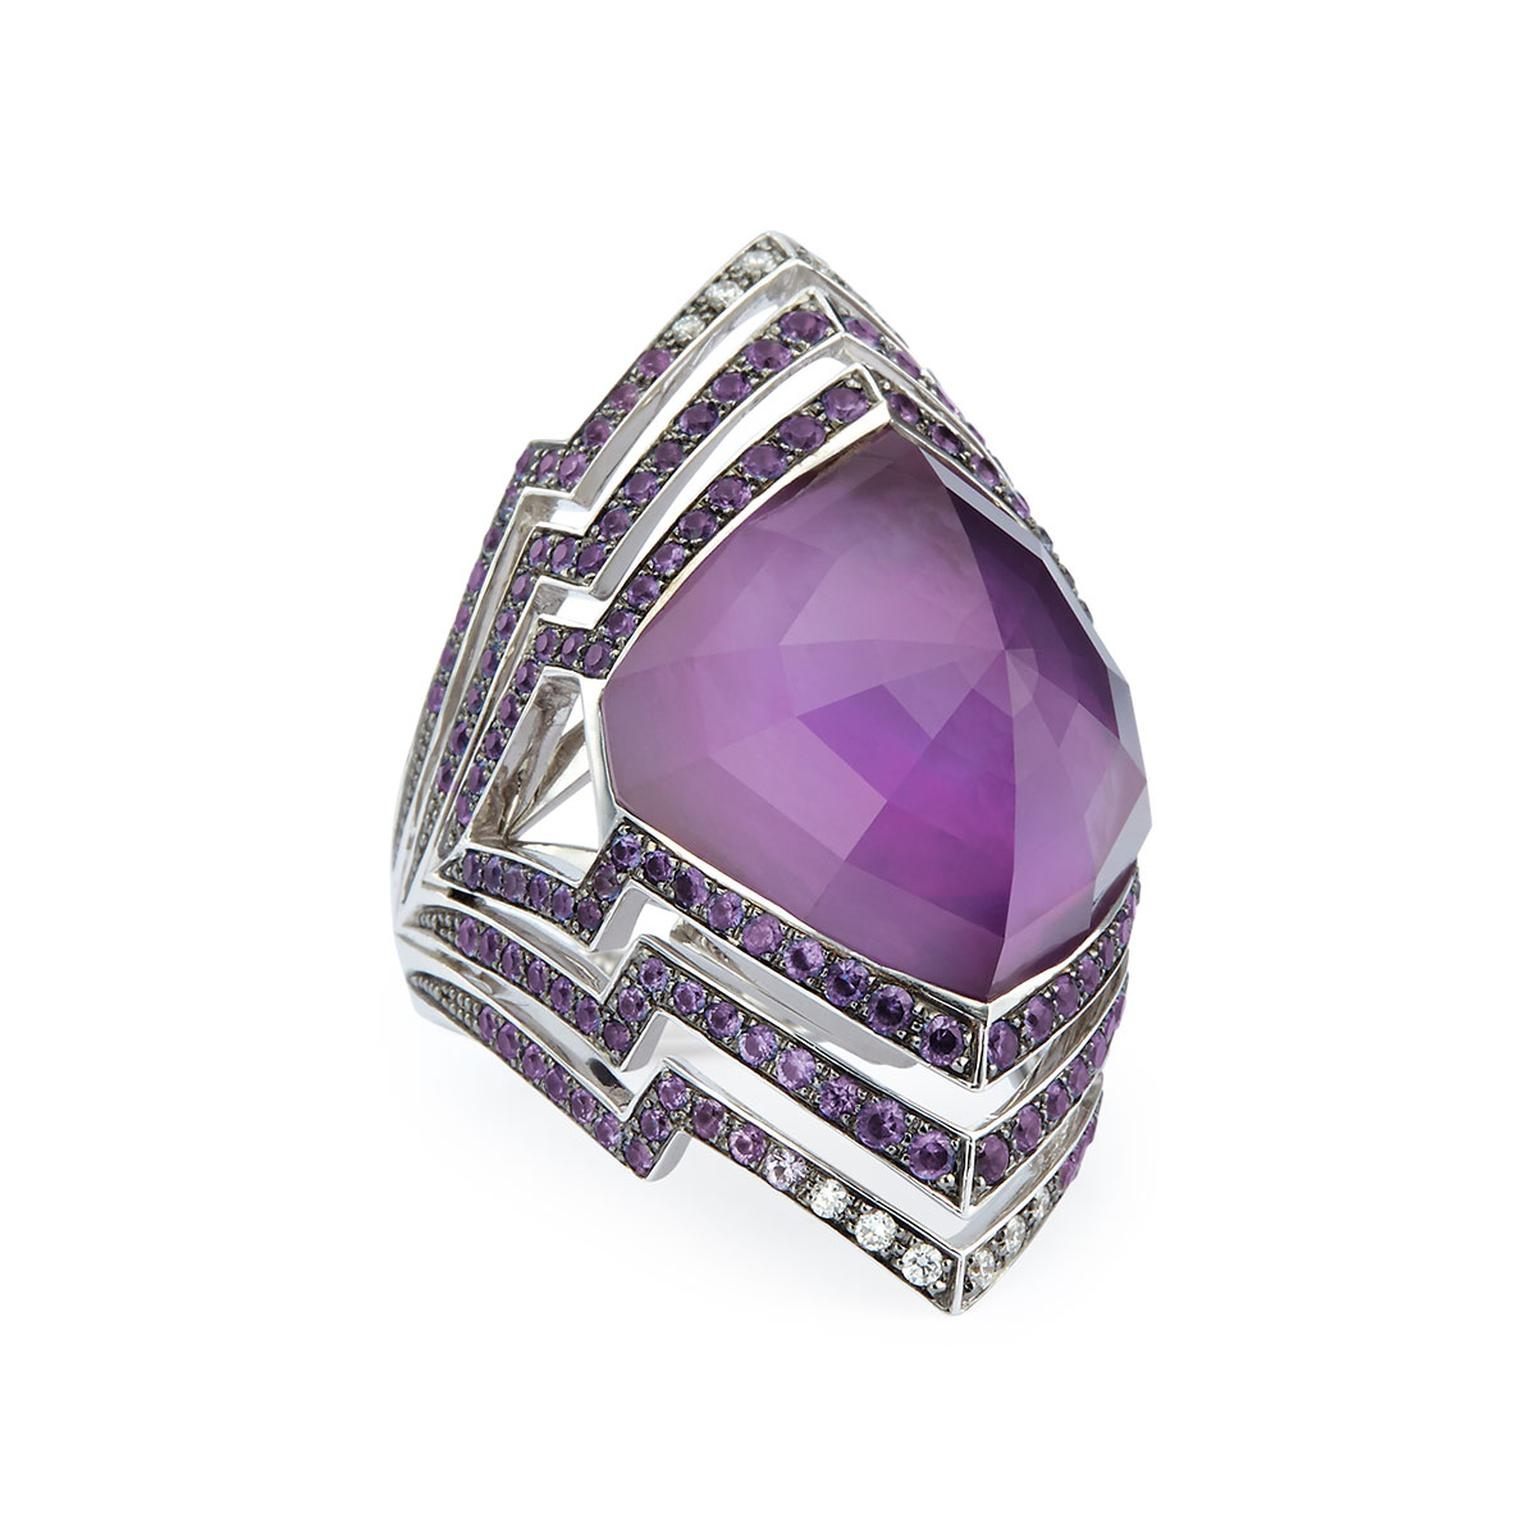 Stephen Webster Lady Stardust amethyst cocktail ring